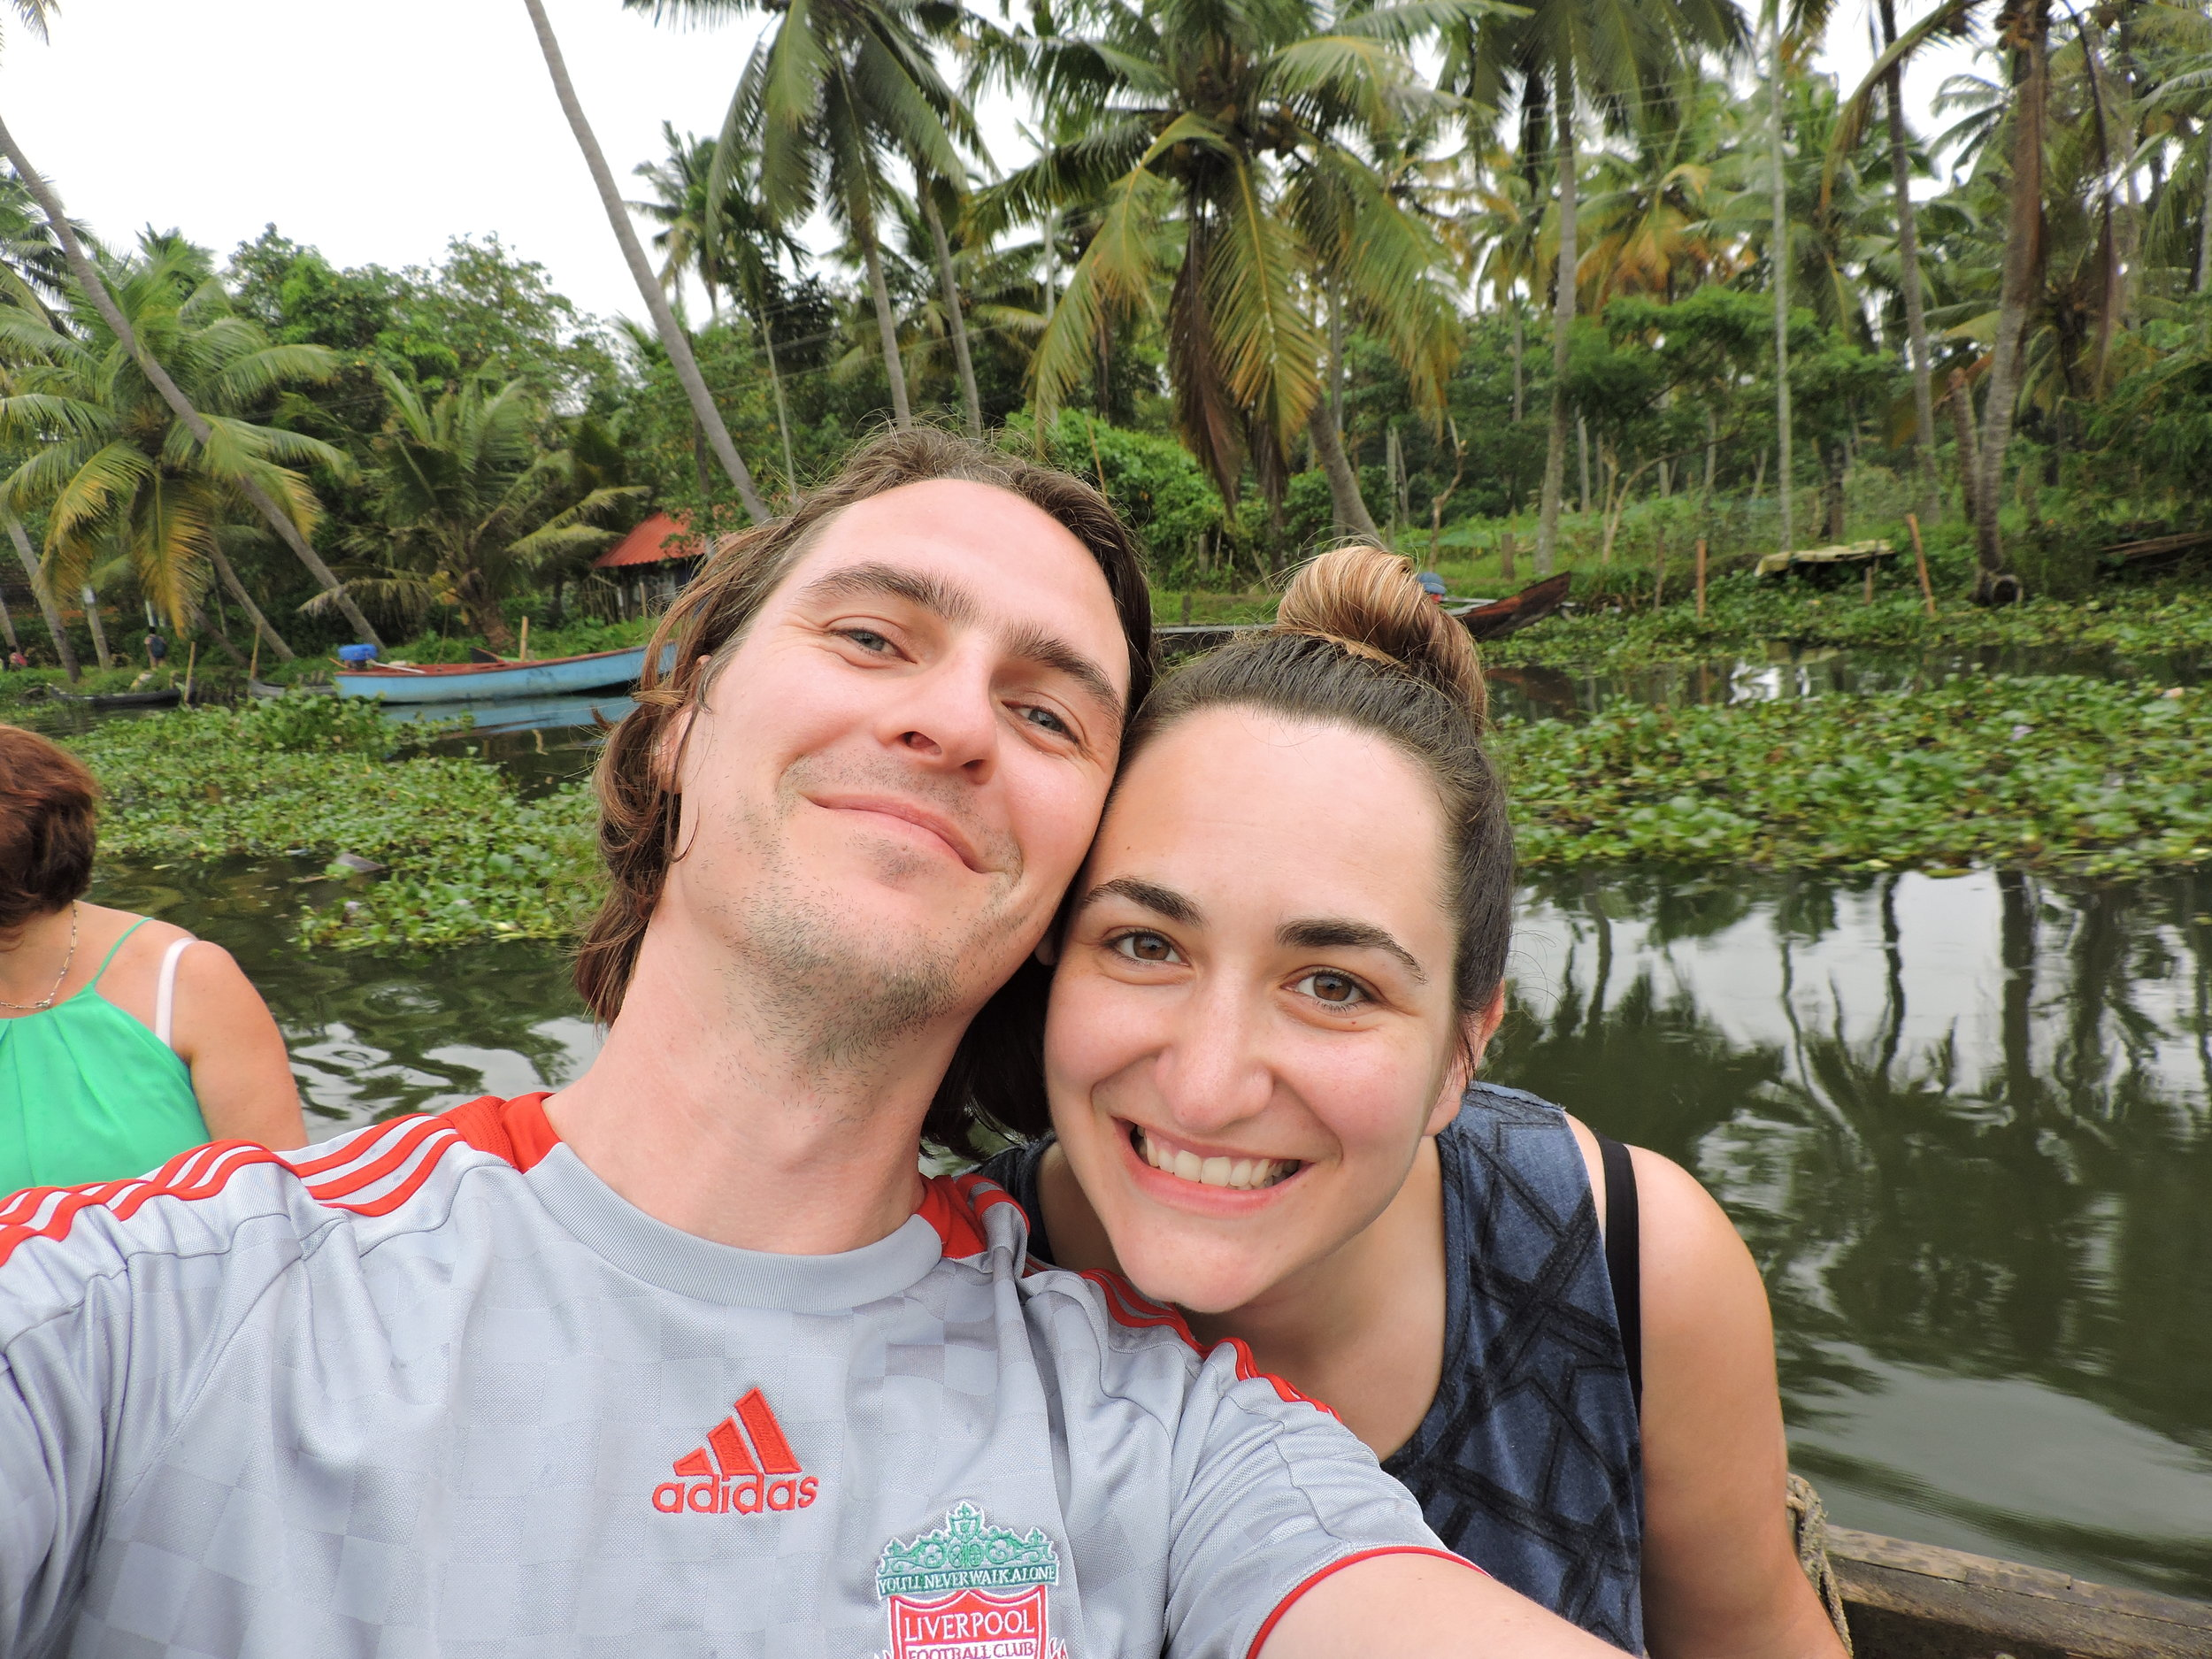 On our honeymoon in Kerala during a tour of the Backwaters.